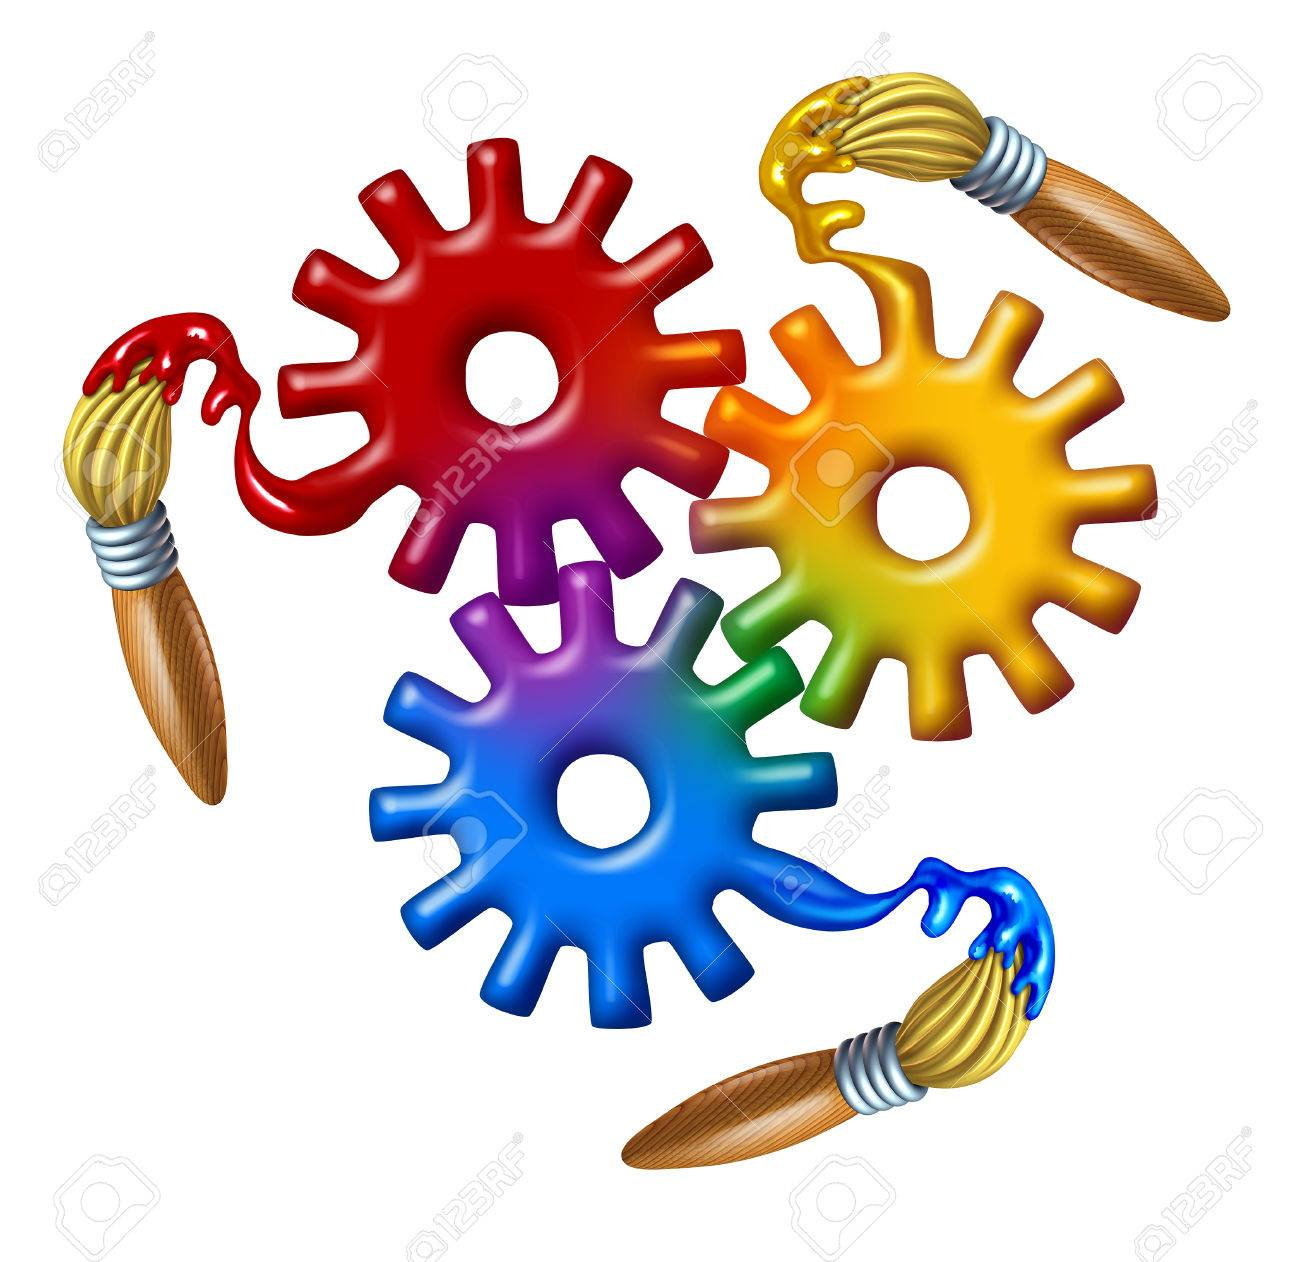 art business symbol and color theory icon as a group of gears